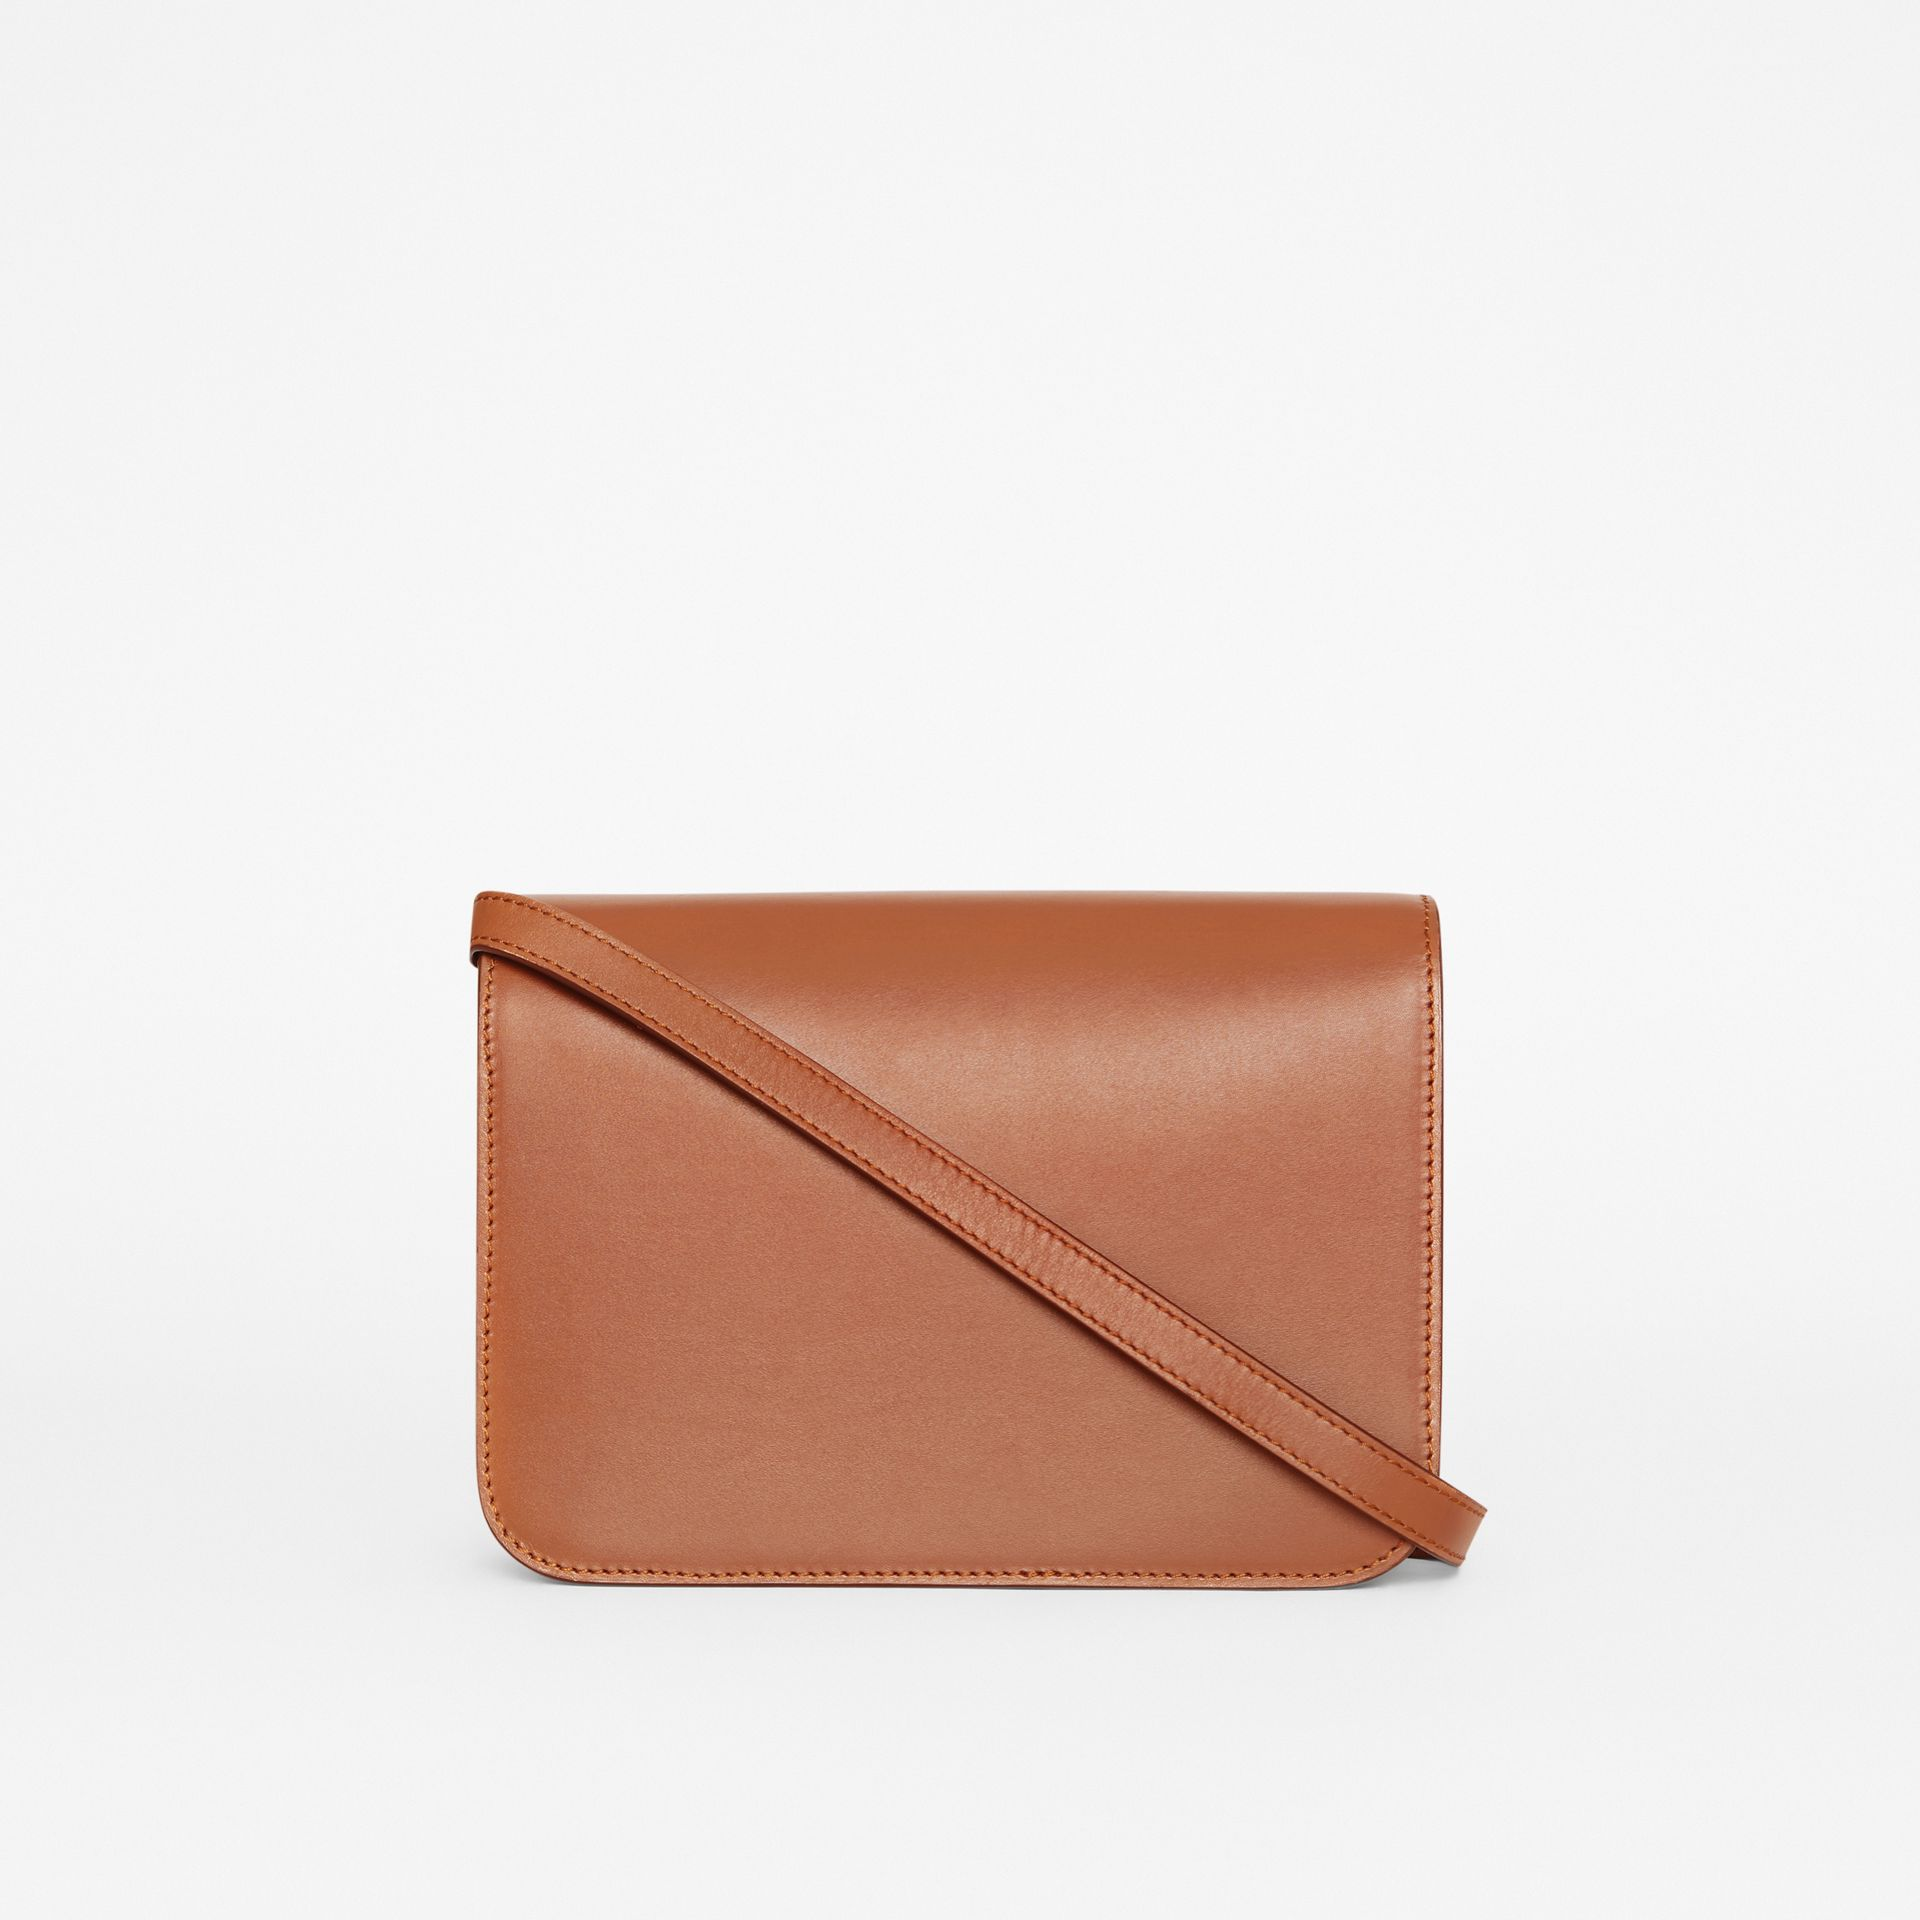 Small Leather TB Bag in Malt Brown - Women | Burberry United Kingdom - gallery image 7